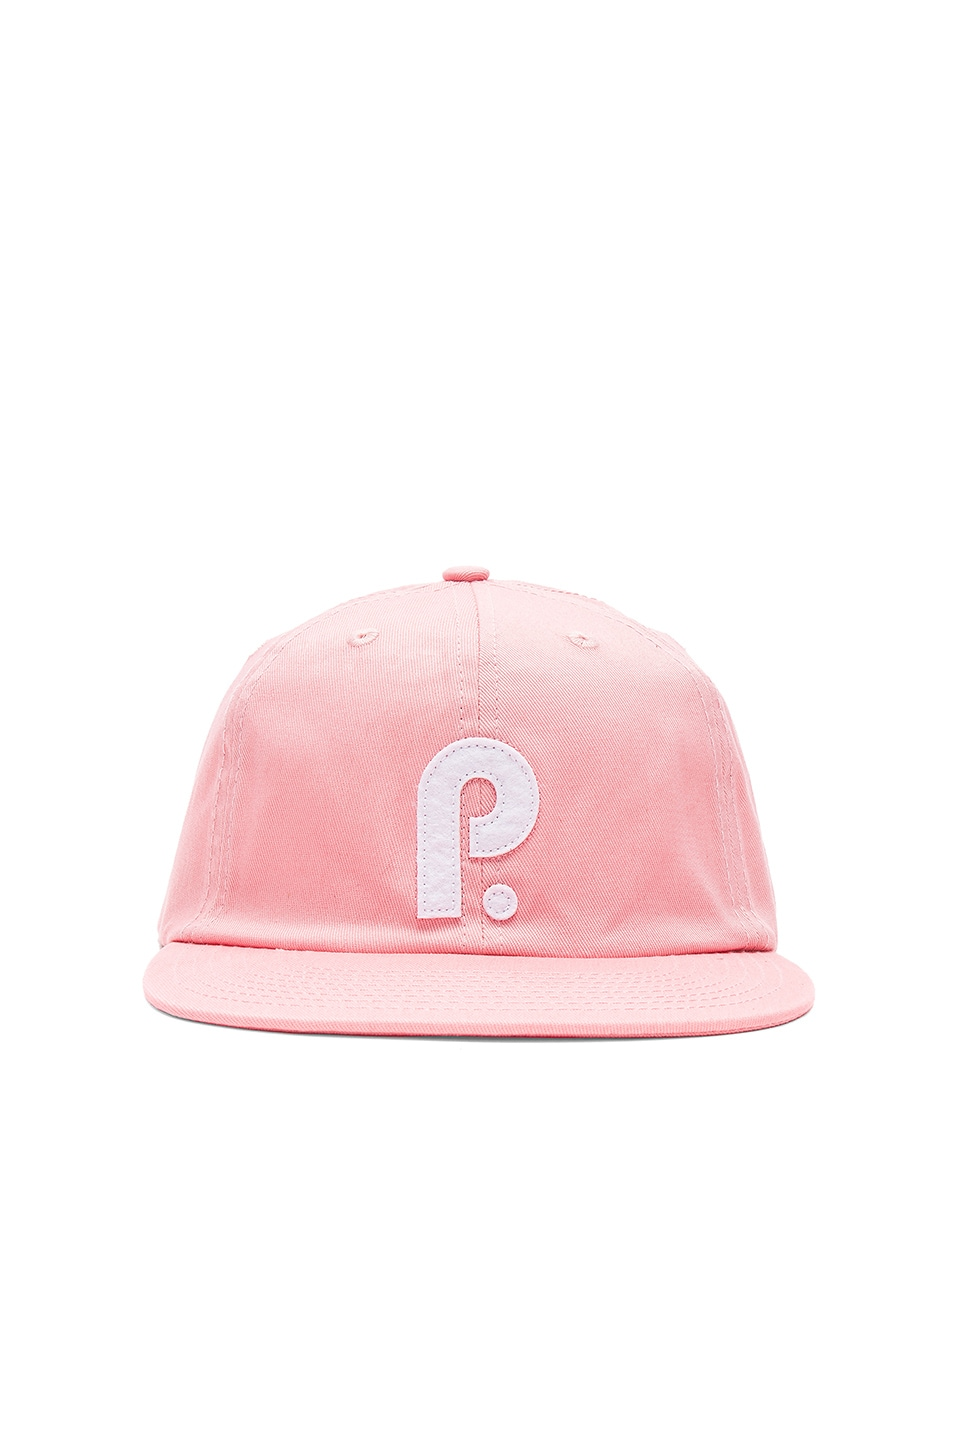 OG P Logo 6 Panel by Paterson